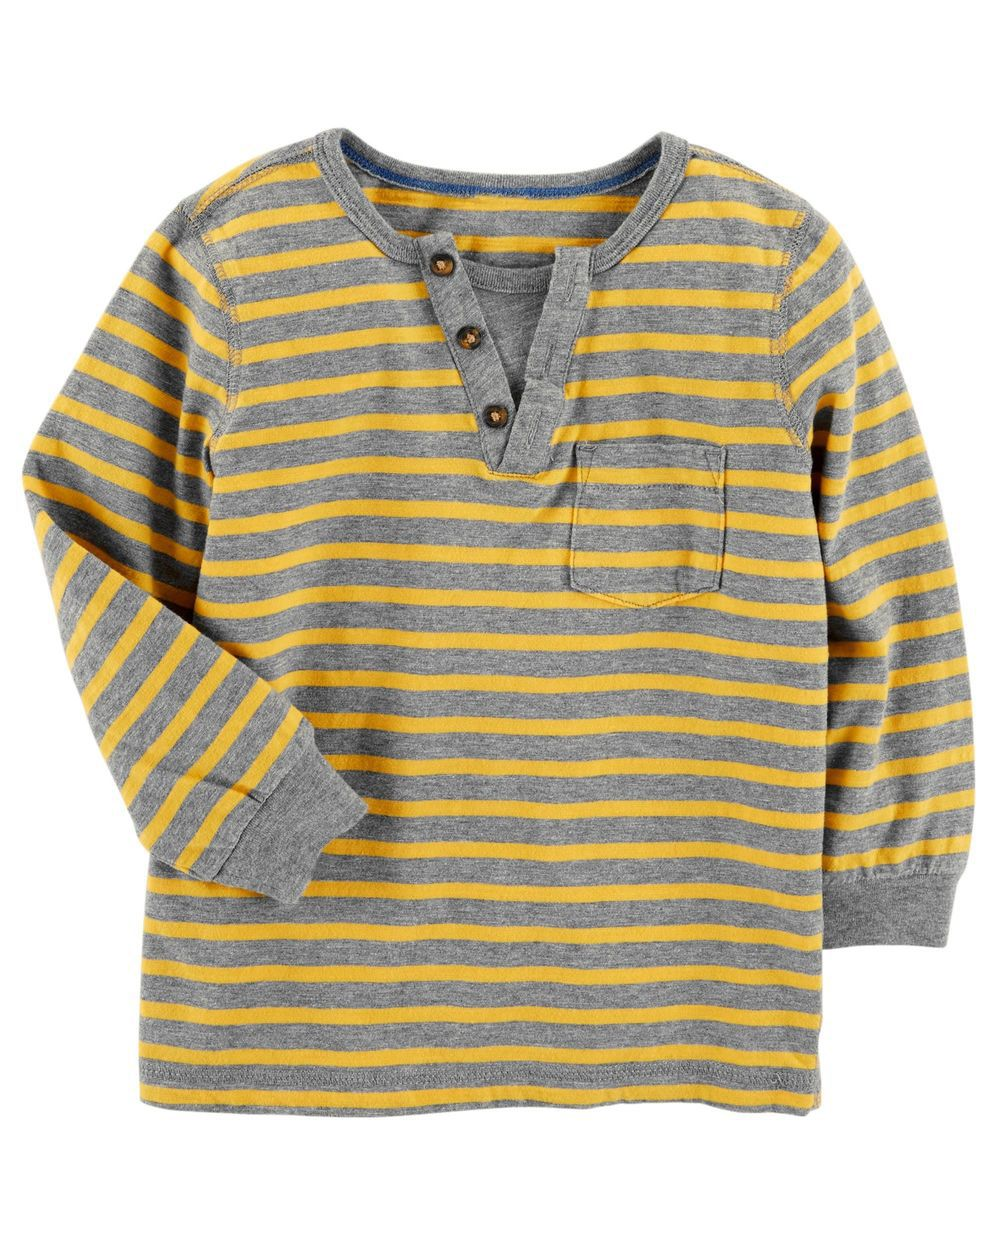 Camiseta Manga Longa Yellow/Gray - Carter's